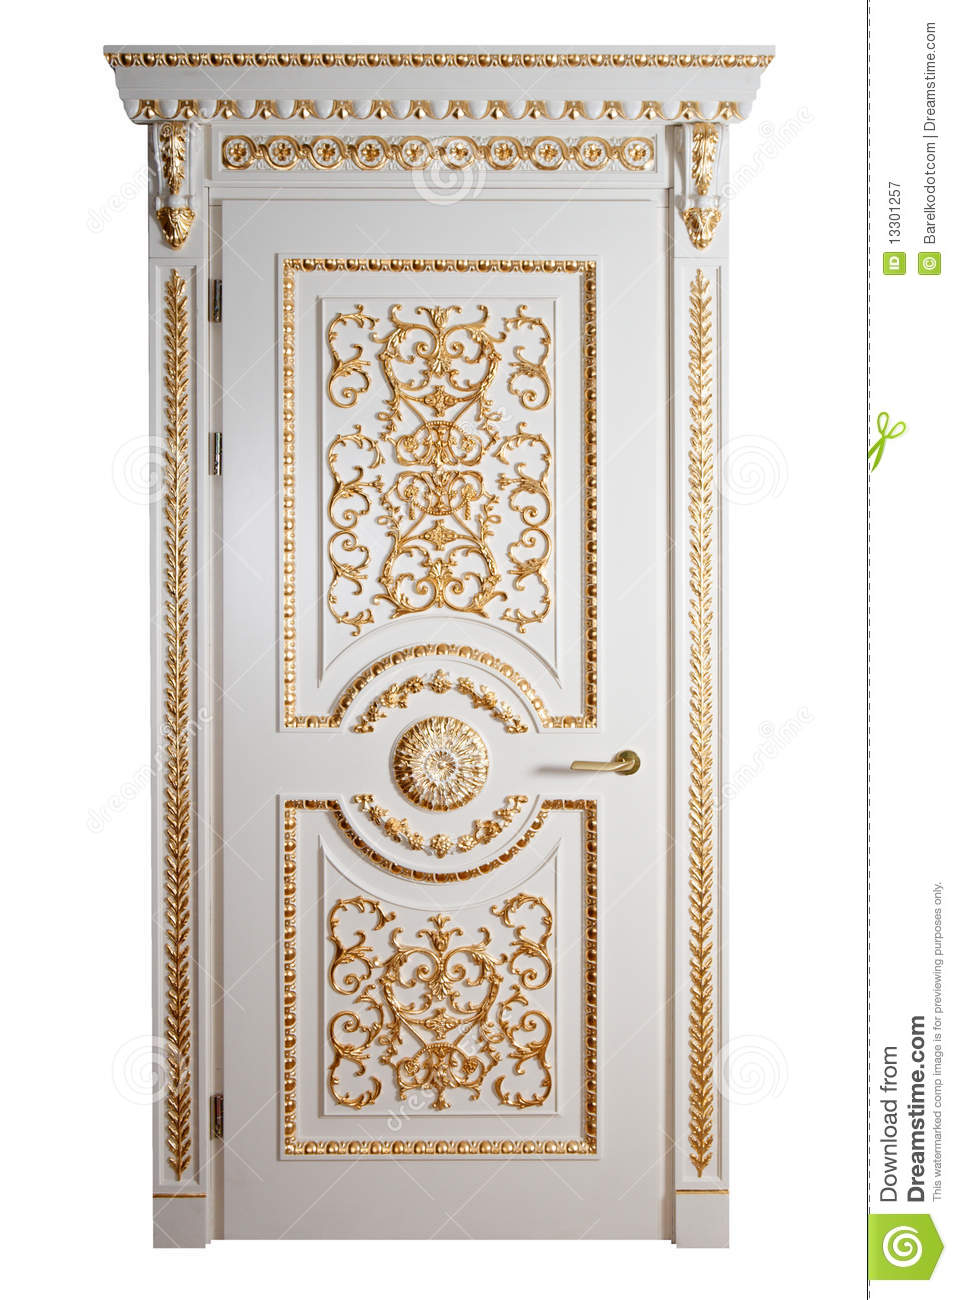 home interior design vector with Royalty Free Stock Photography Handmade Luxury Door Image13301257 on Royalty Free Stock Photos Drawing Room Image13511178 additionally Creative Wallpapers additionally Vector Window Pink Shutters Transparent Curtains 627444149 moreover 3710 0 furthermore Stock Images Kitchen Stone Fireplace Image13028824.